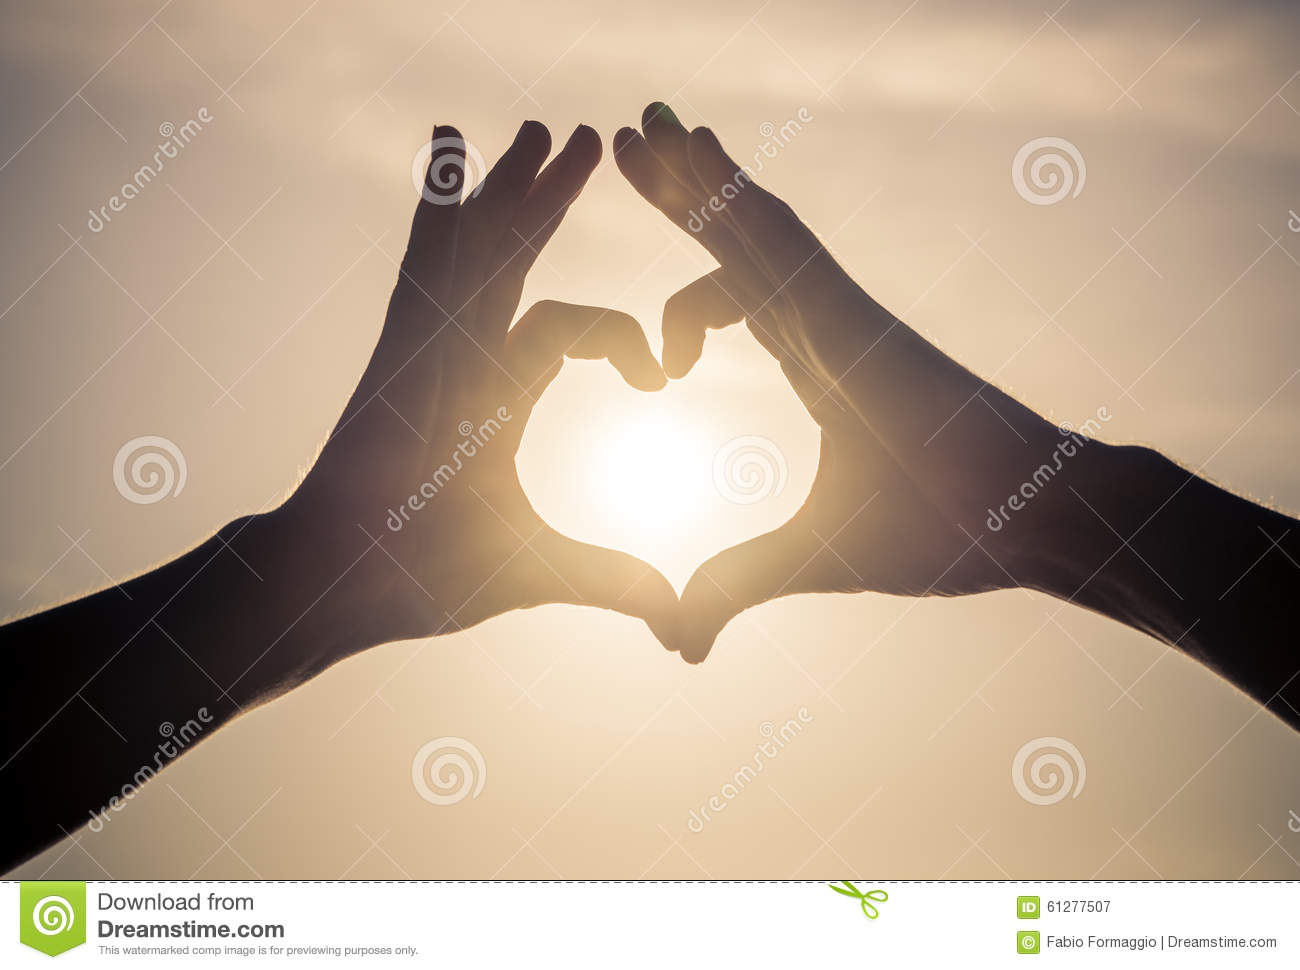 couple-making-love-symbol-sky-silhouette-two-arms-heart-figure-61277507.jpg